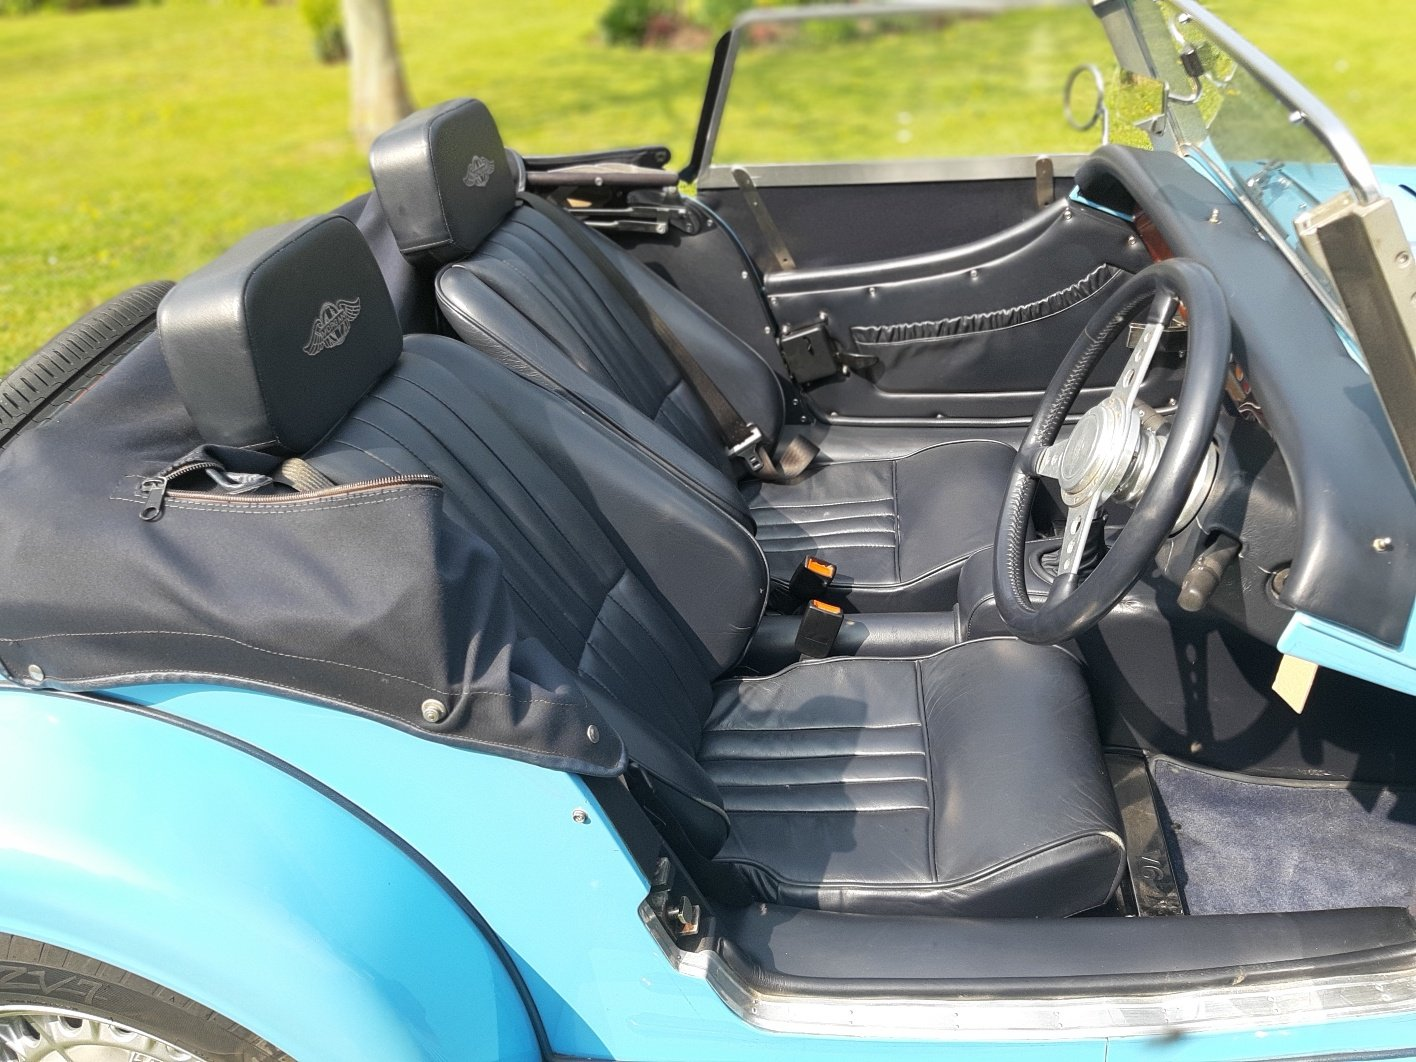 2005 3.0ltr Roadster in fantastic condition For Sale (picture 4 of 6)